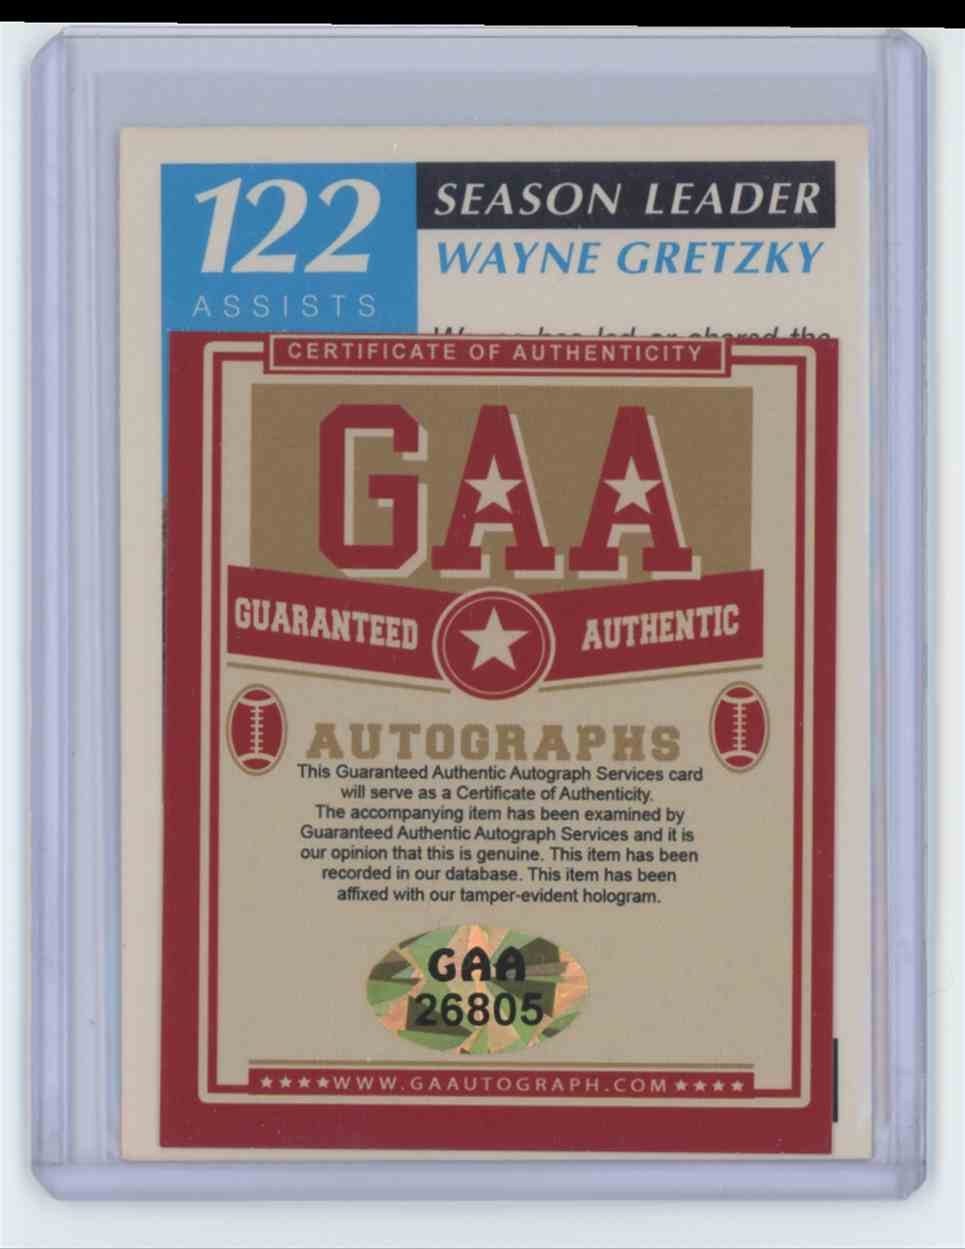 1991 1991-92 Score #295 Wayne Gretzky Season Leader 122 Assists Auto Wayne Gretzky #295 card back image